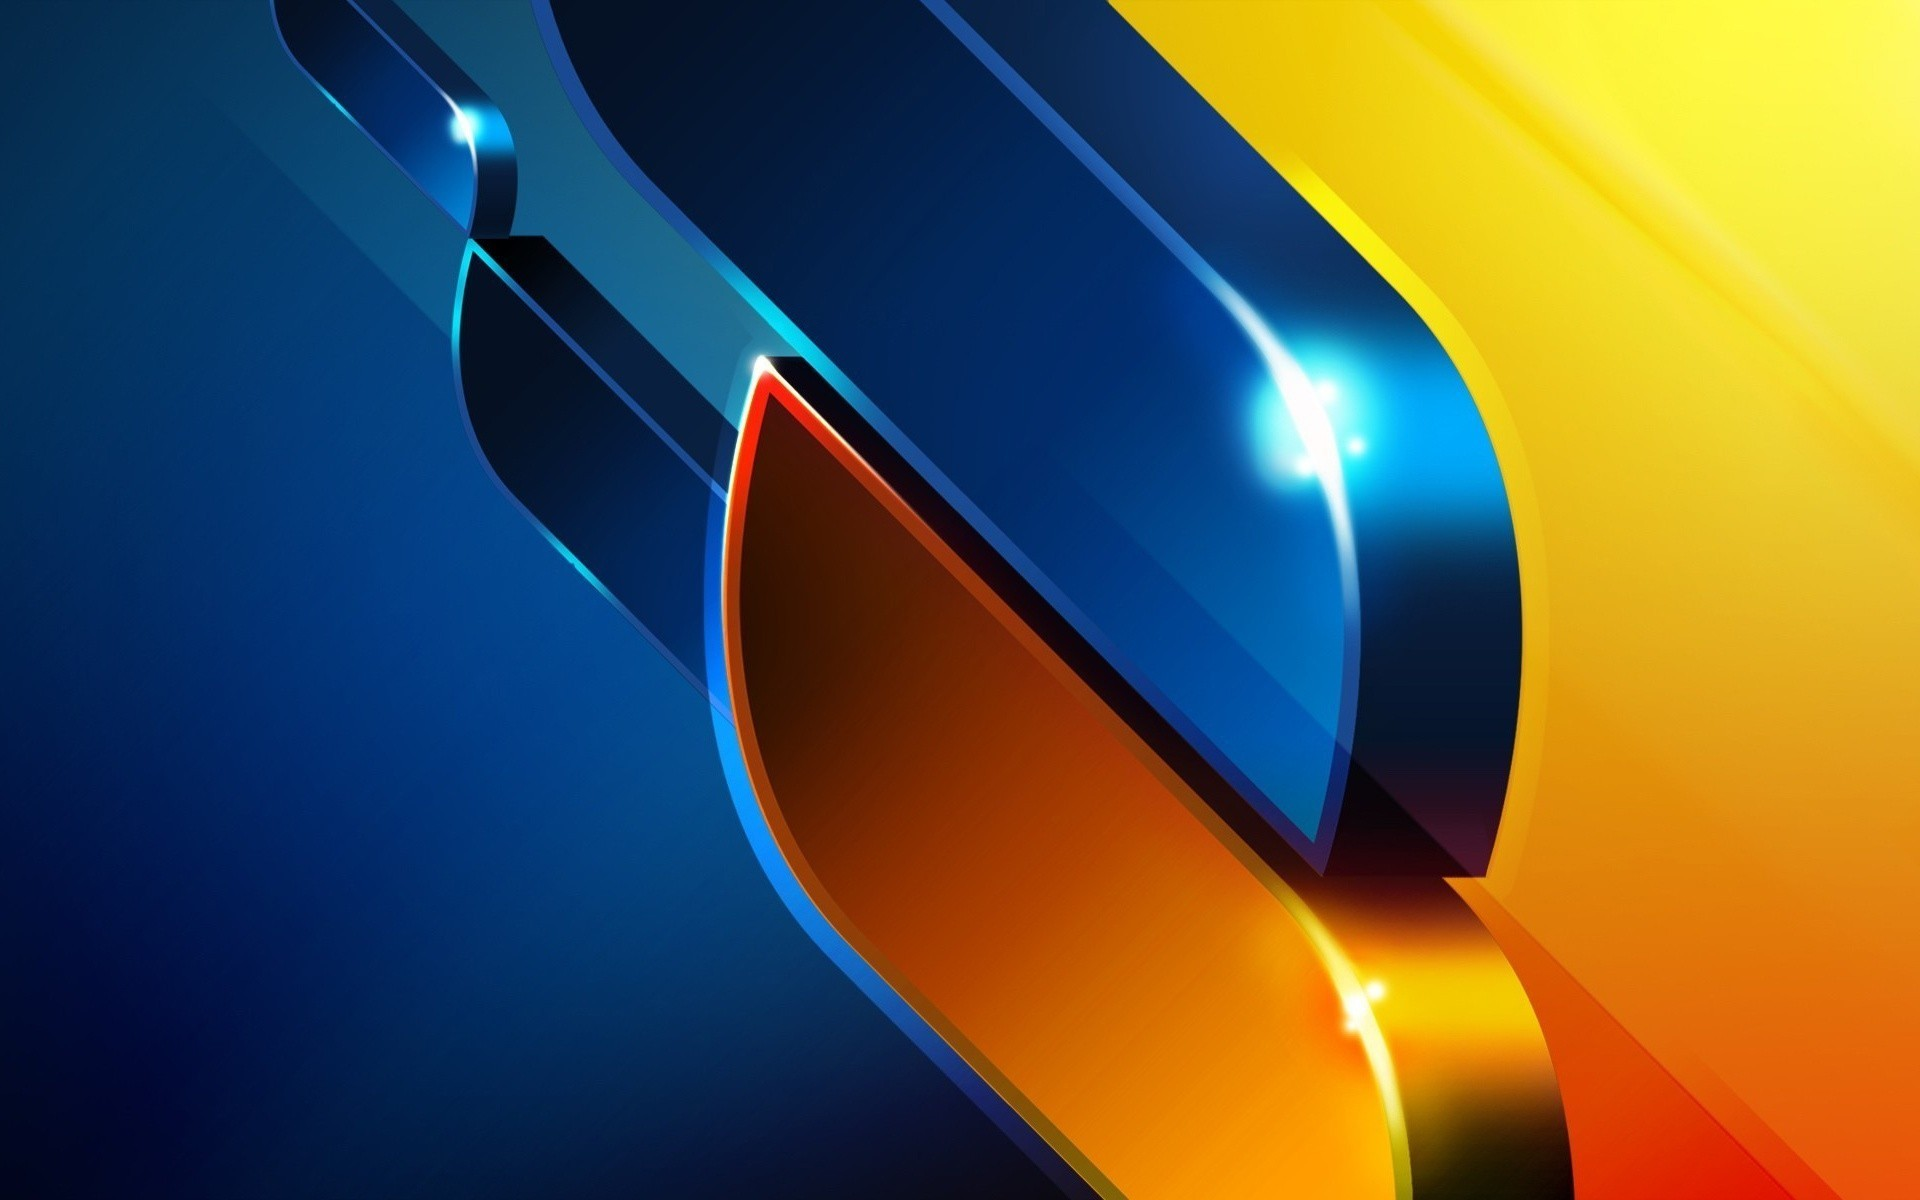 Vector, Design, Free Imagesmulticolor, Widescreen,hd - Hd Wallpapers Light Abstract Background , HD Wallpaper & Backgrounds